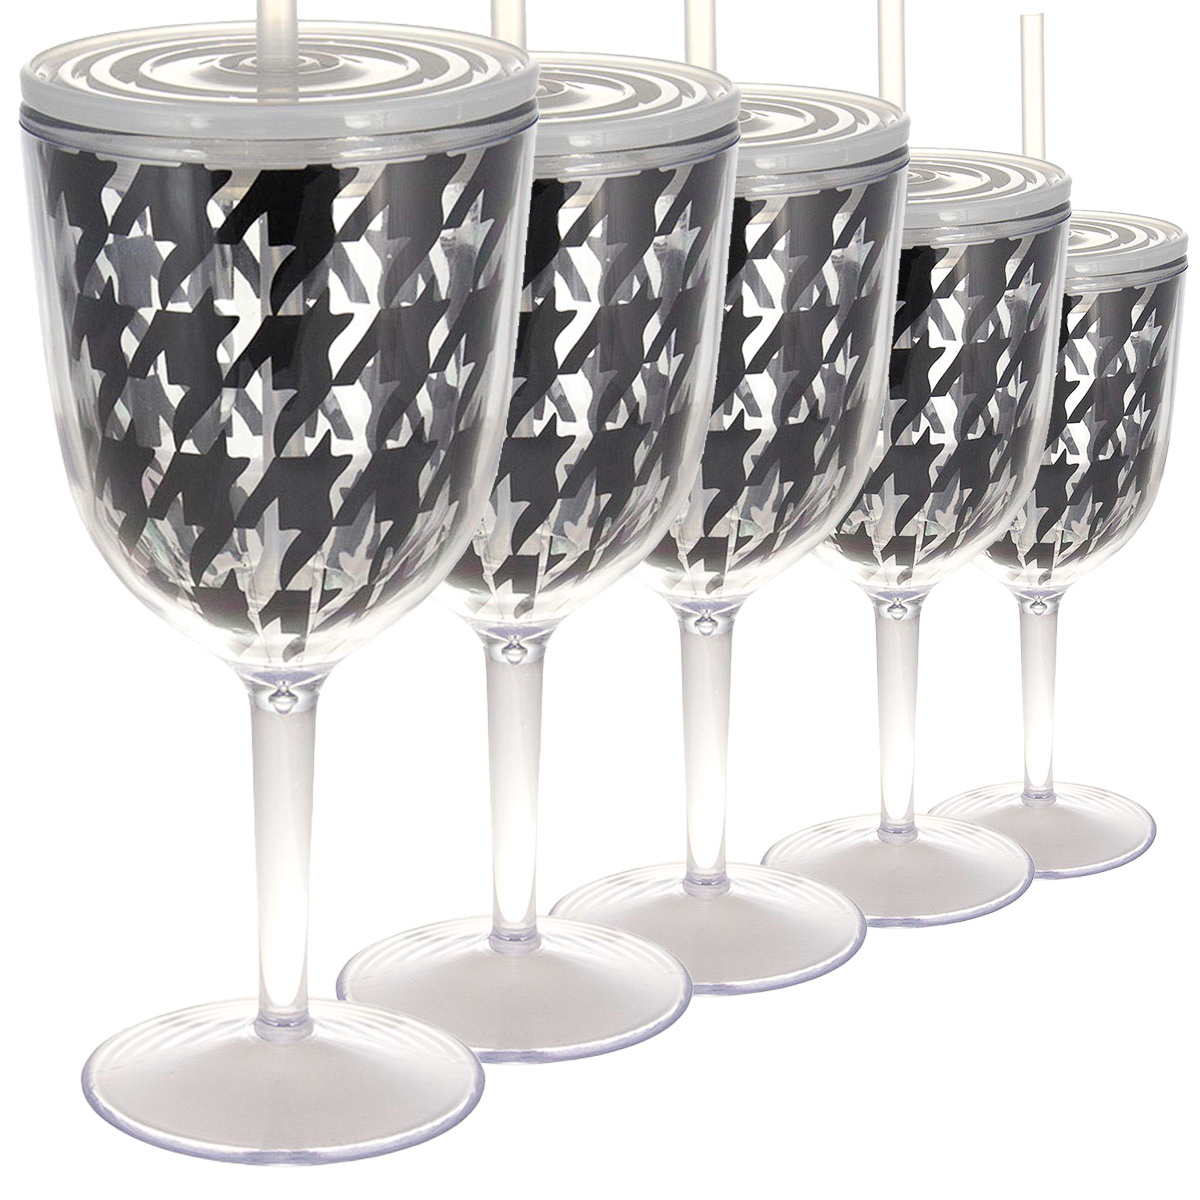 6ct Black Houndstooth 13oz Wine Glasses With Lids Straws Double Wall Insulated